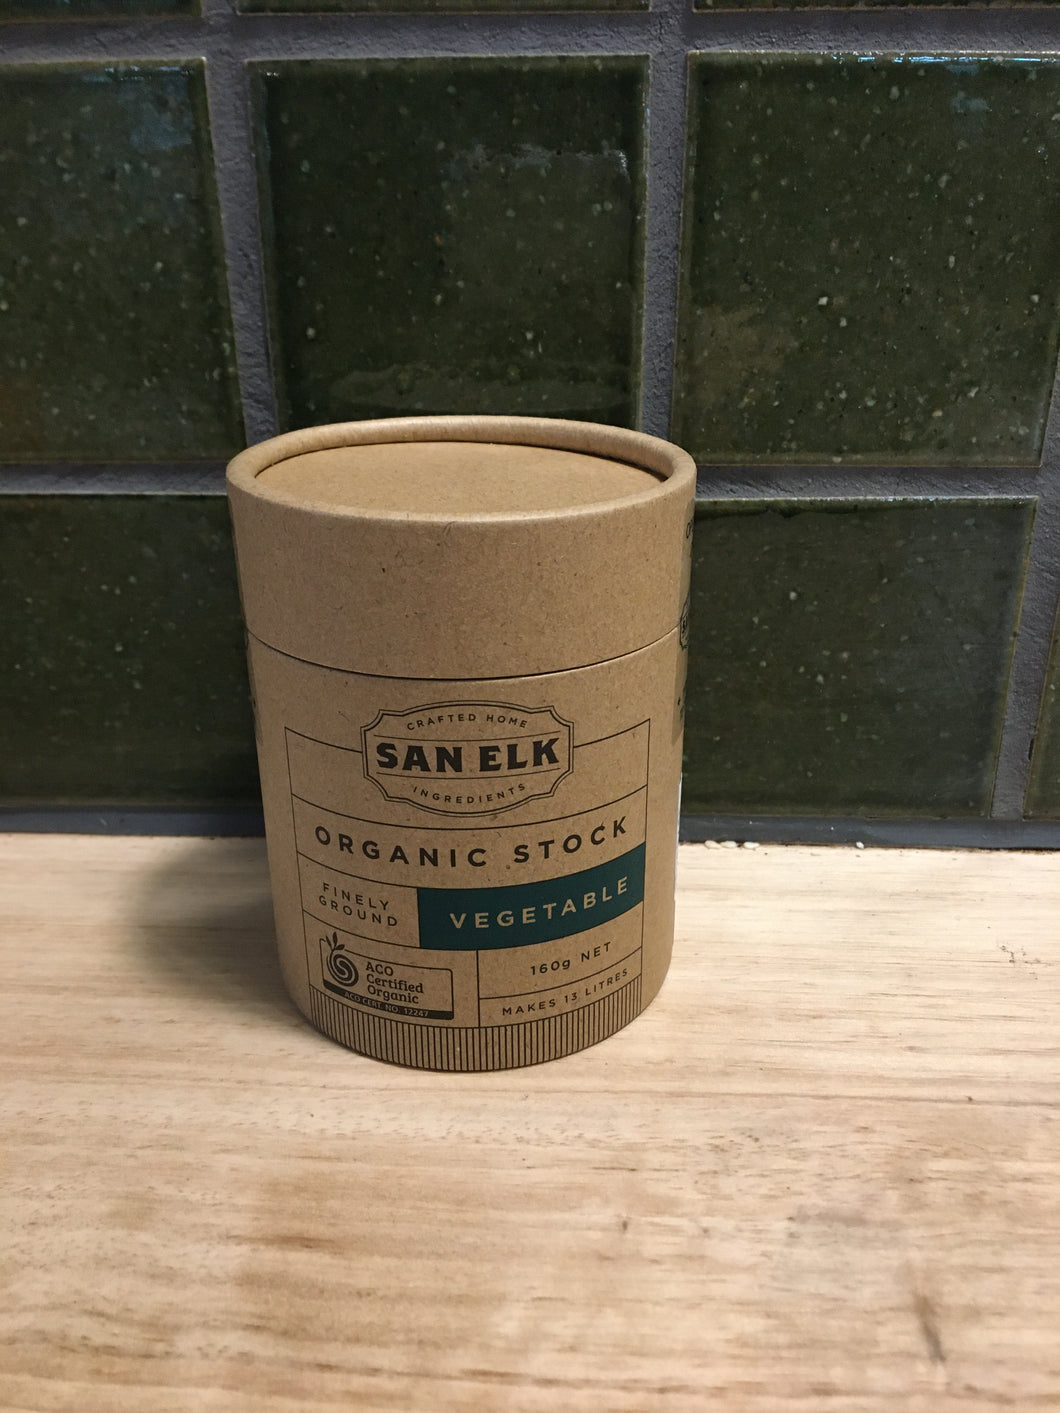 San Elk Artisan Stock Vegetable 160g